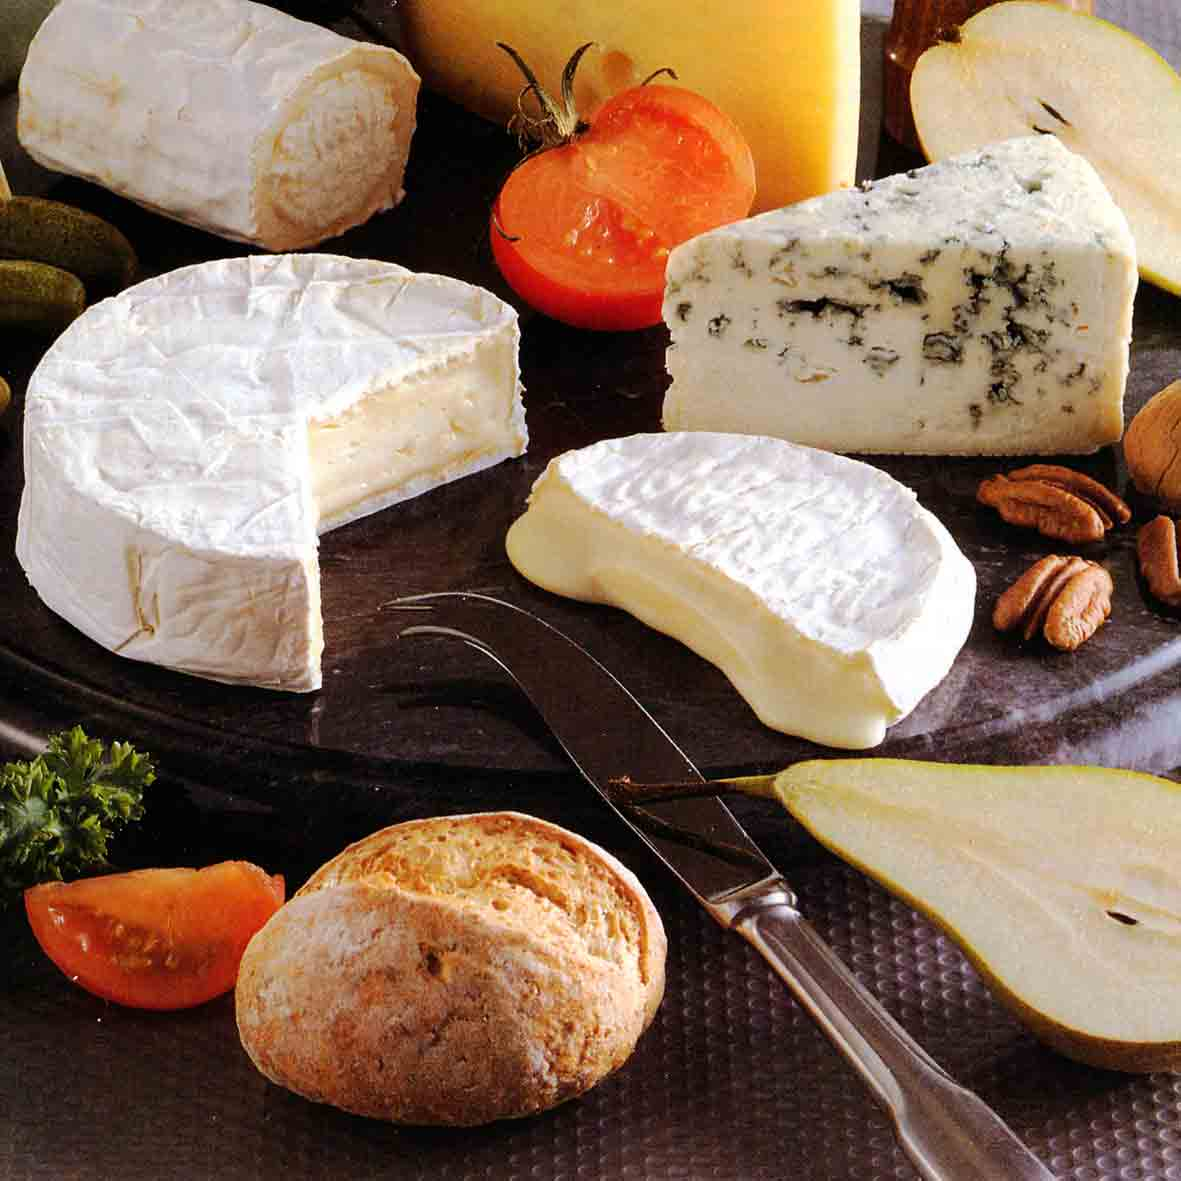 Plateaudefromage_1296907827.jpg